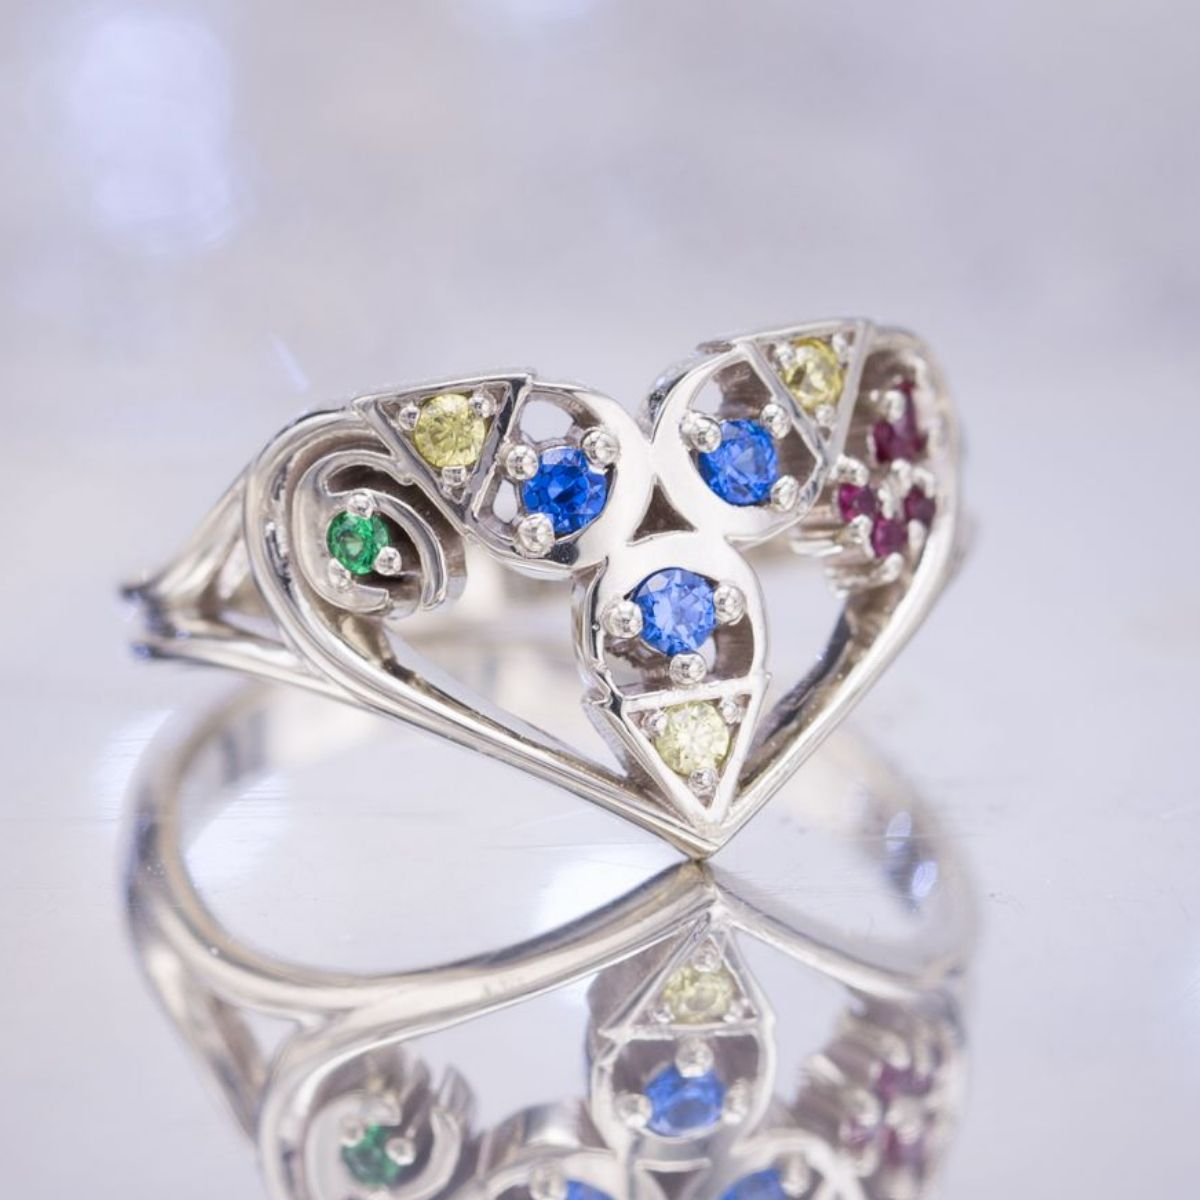 Considerable Bright Gem Colors Make This A Engagement Blending Geeky Engagement Rings Nerdy Wedding Bands Curves Spiritual Stones From Legend wedding rings Nerdy Engagement Rings